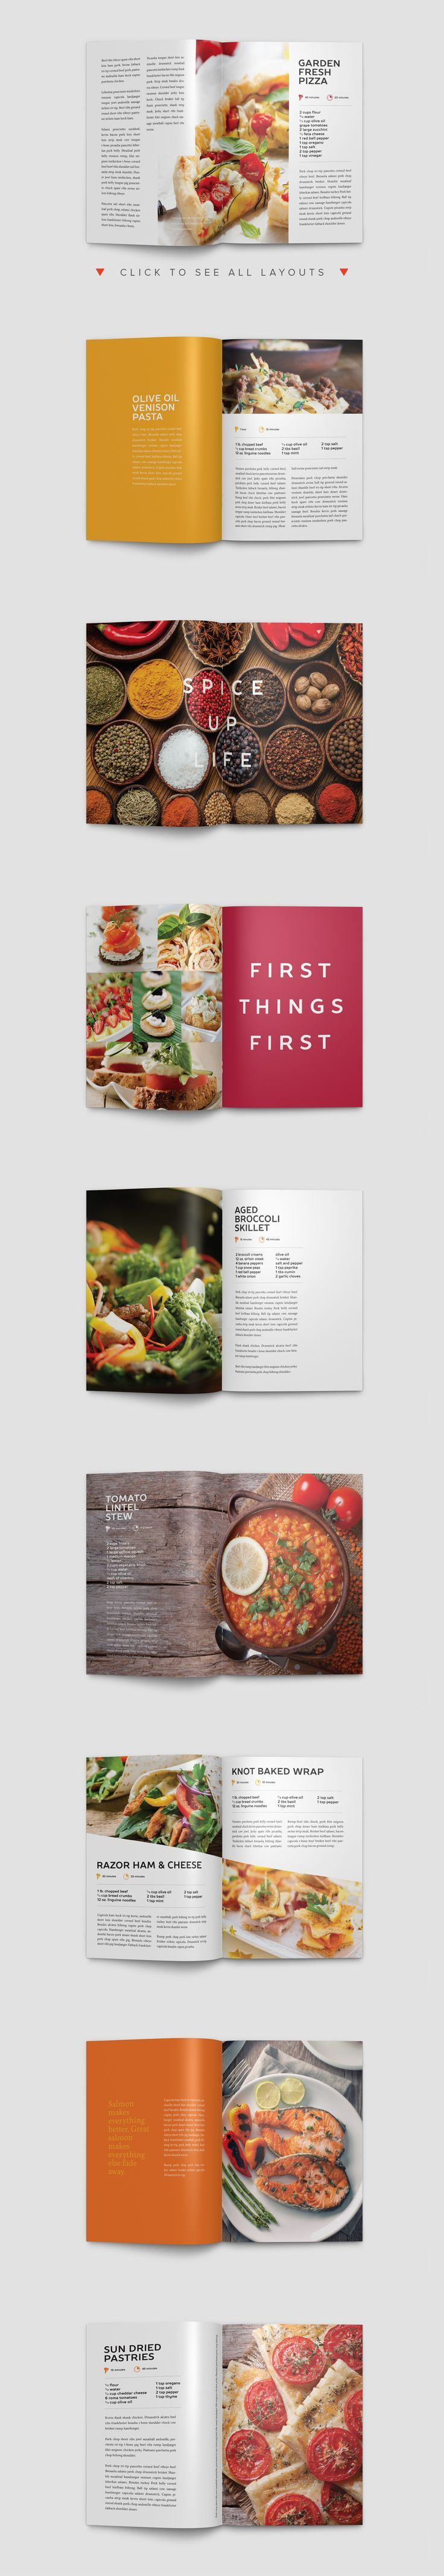 Modern Cookbook InDesign Template by Prixel Creative on Creative ...